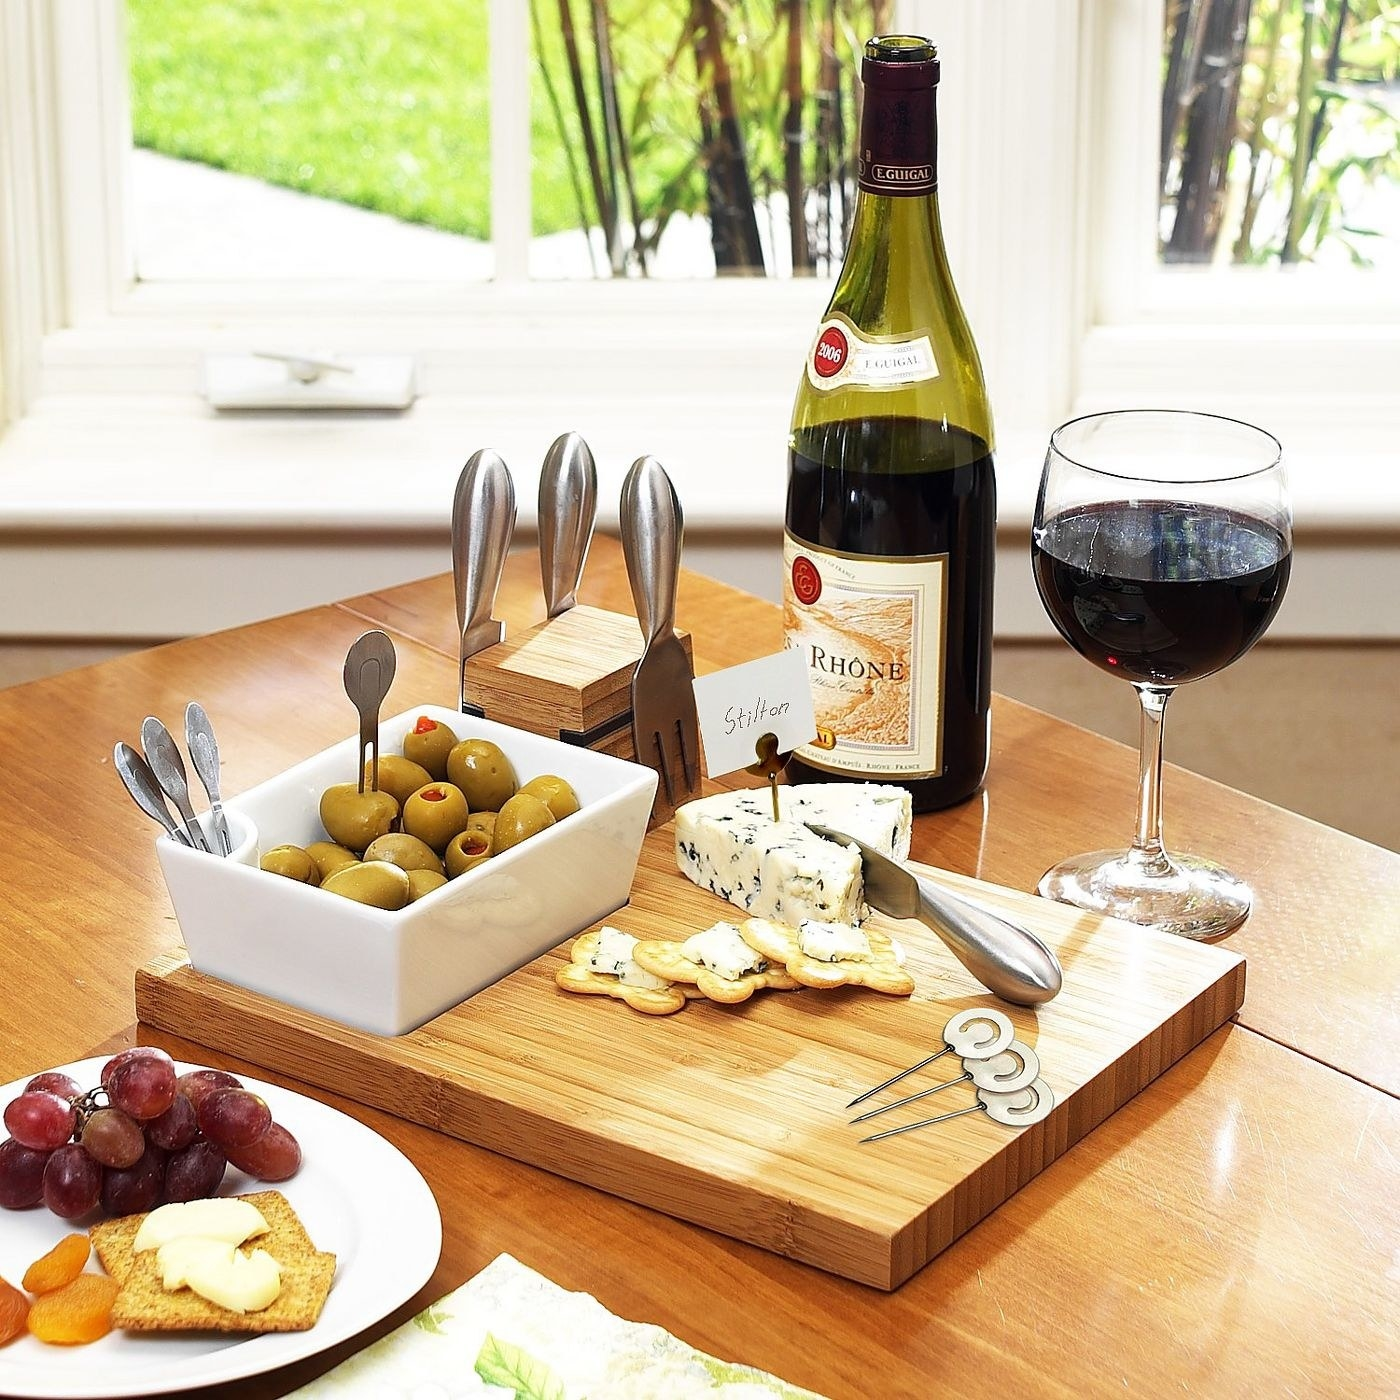 The wooden block cheese board